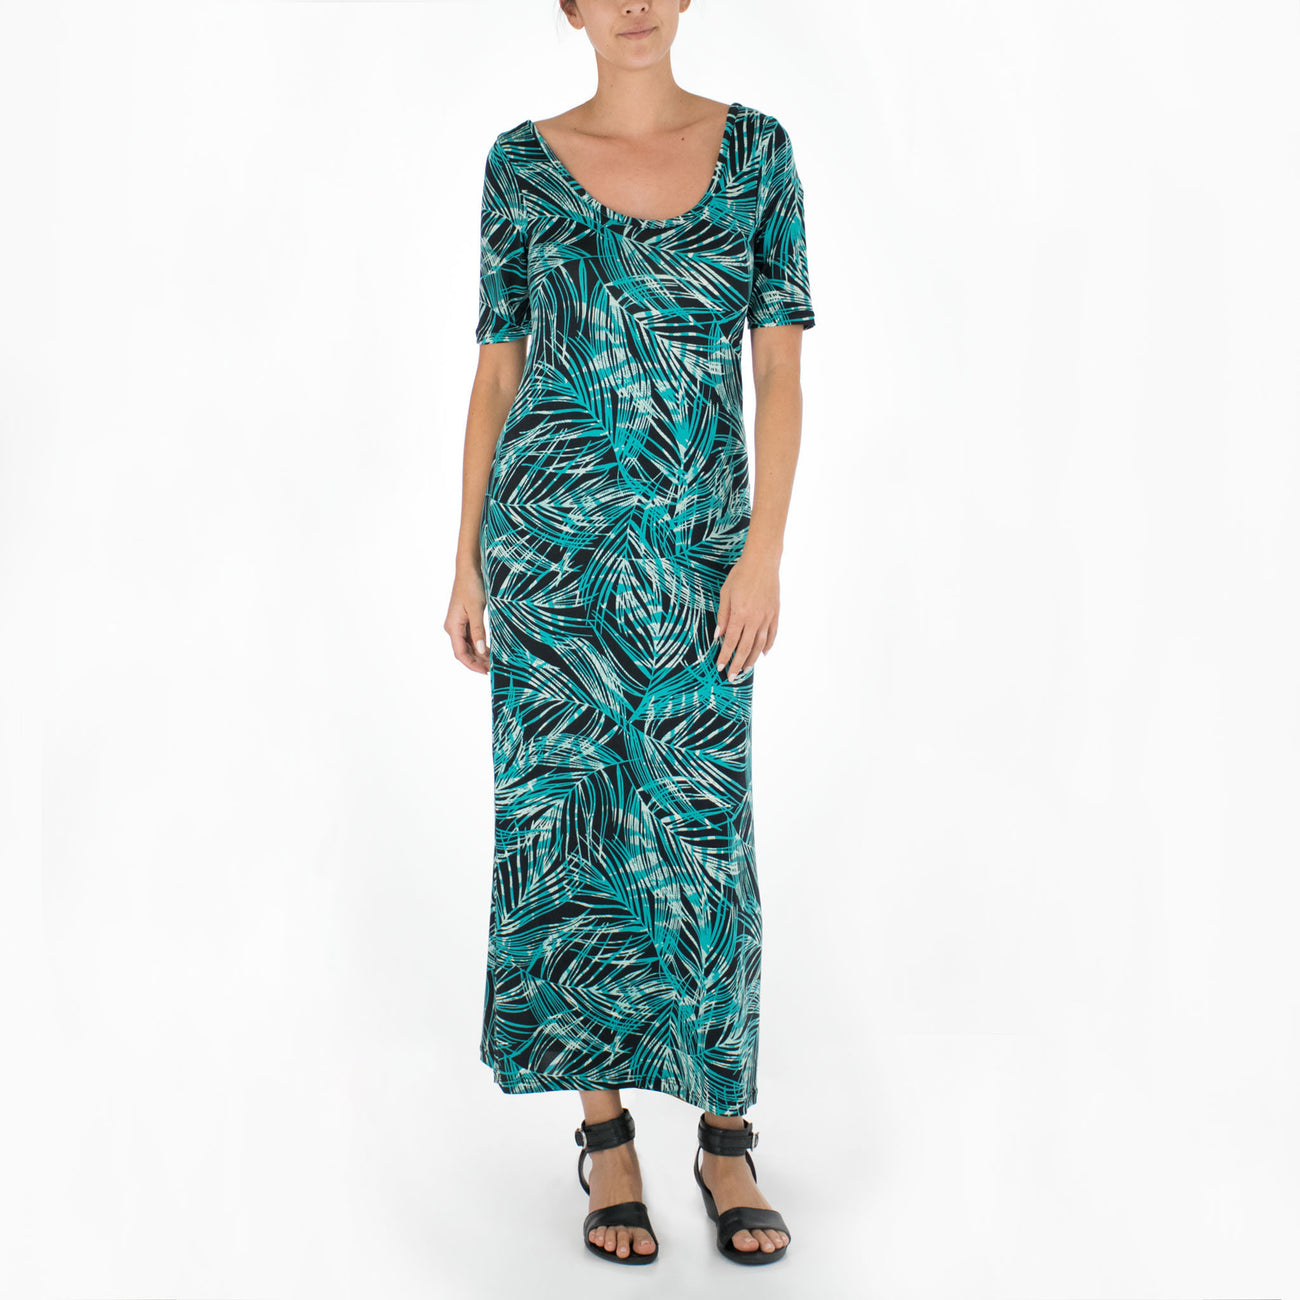 FEATHERED LEAVES LONG SCOOP NECK KNIT DRESS